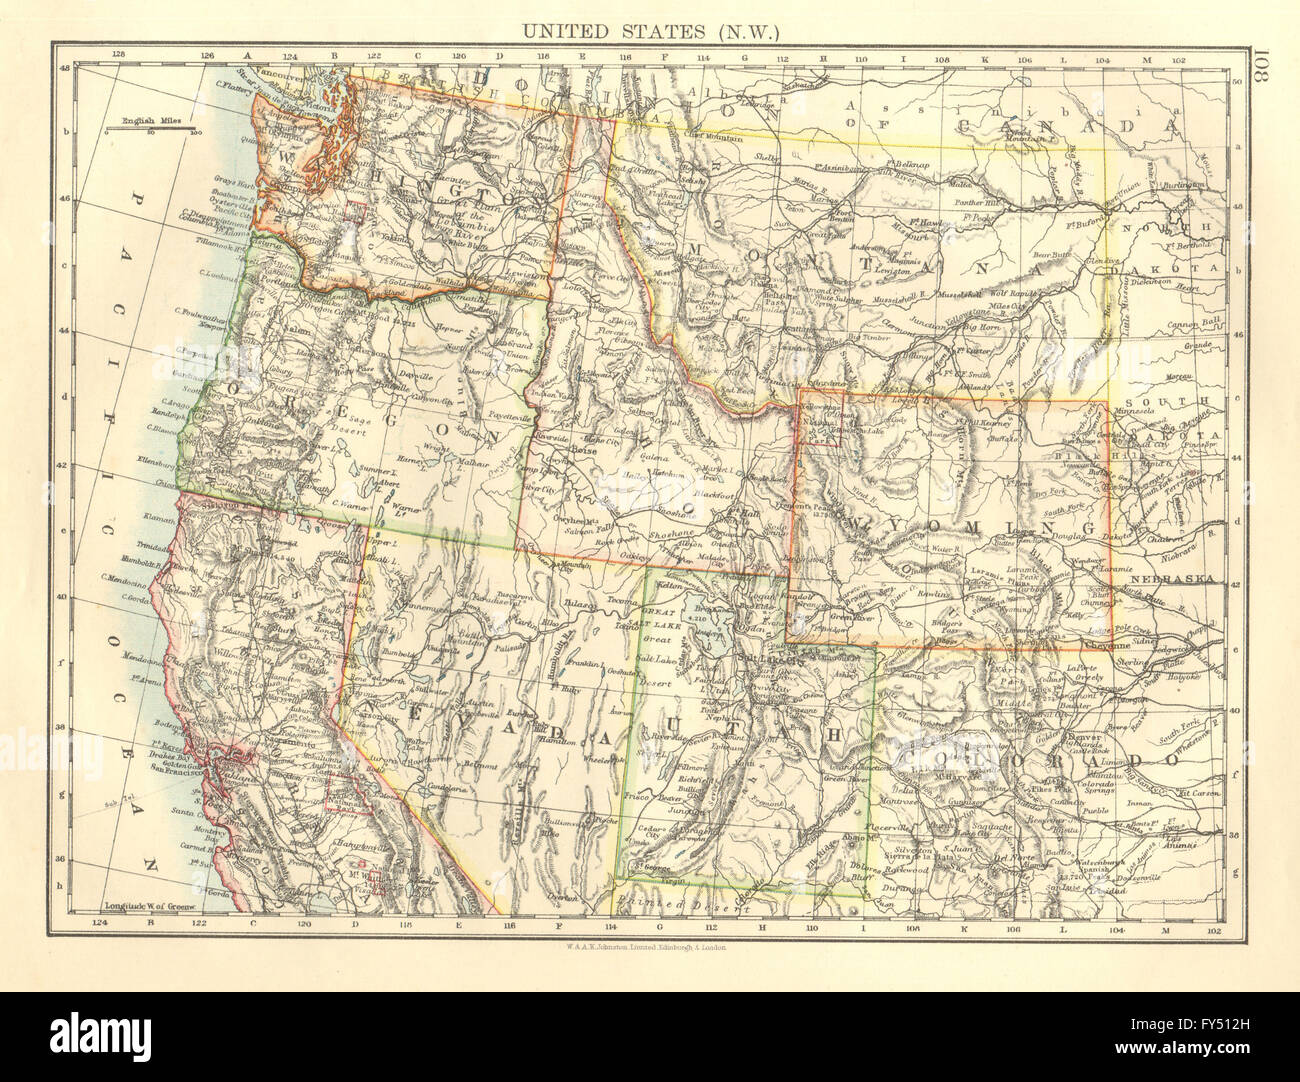 North West Us Map Globalinterco - West us region map